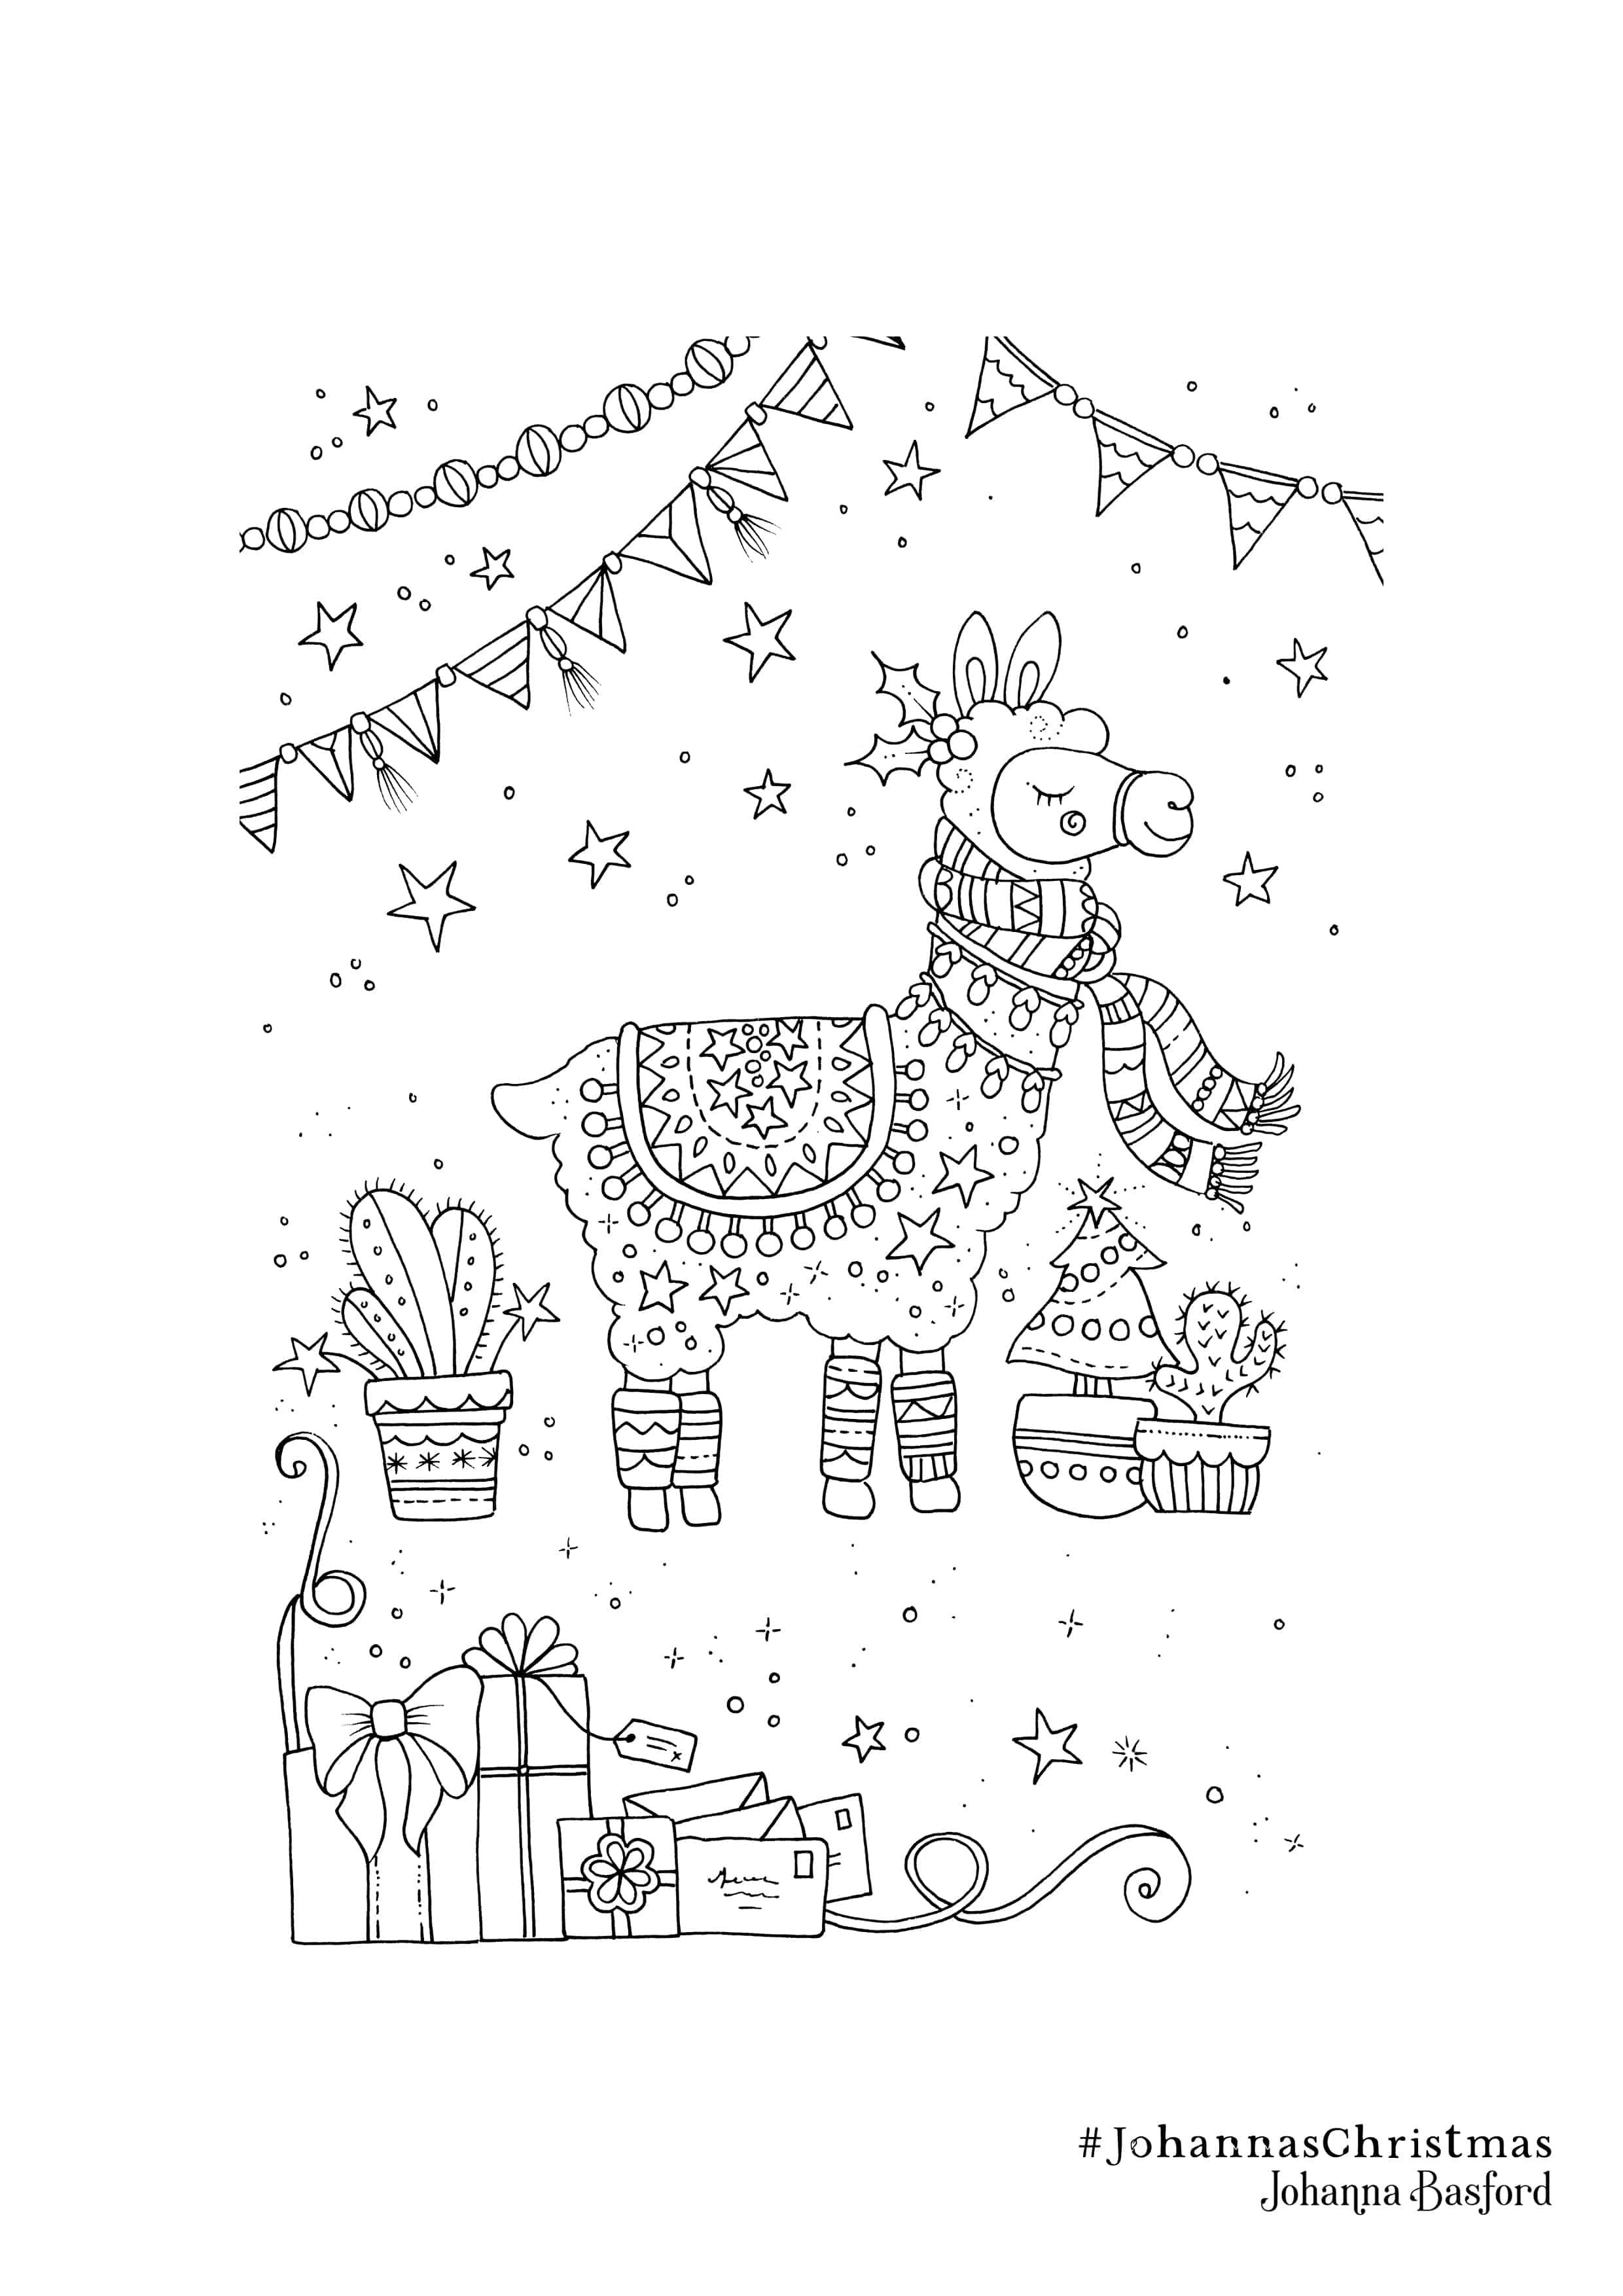 Https Www Johannabasford Com Wp Content Uploads 2018 12 Christmas Llama Jpg Christmas Coloring Books Coloring Pages Winter Pokemon Coloring Pages